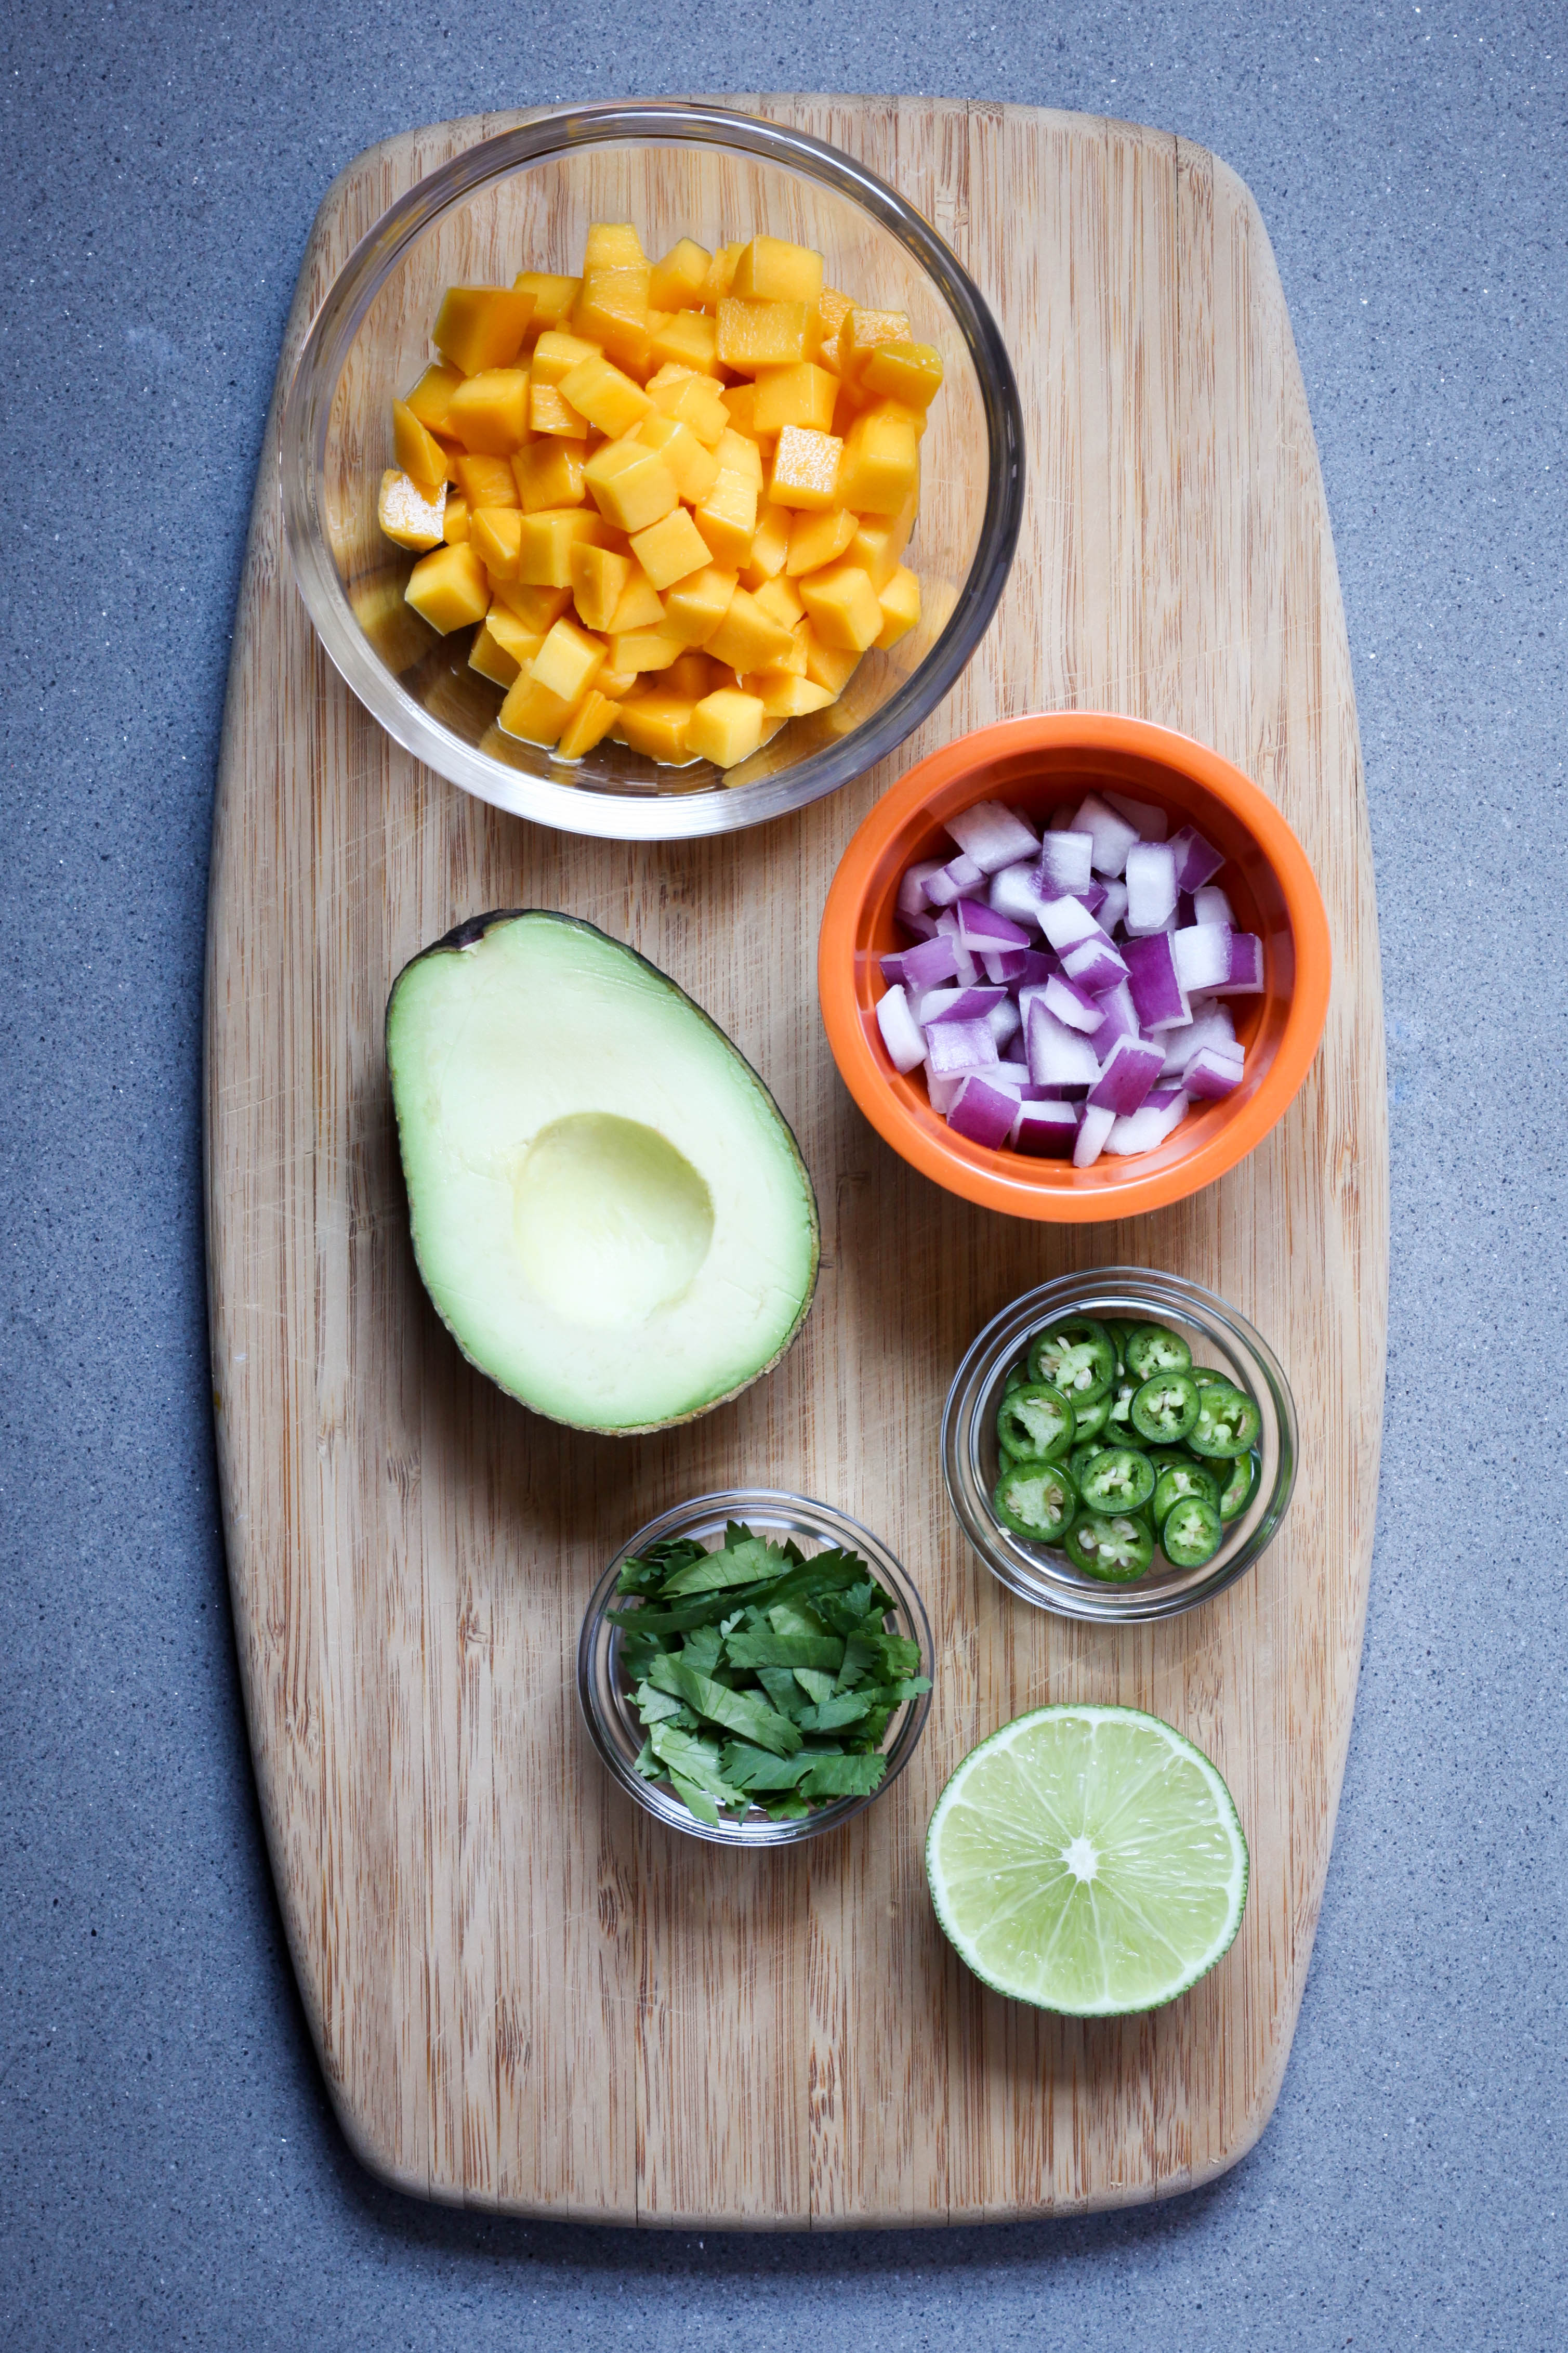 Ingredients for mango-avocado salsa